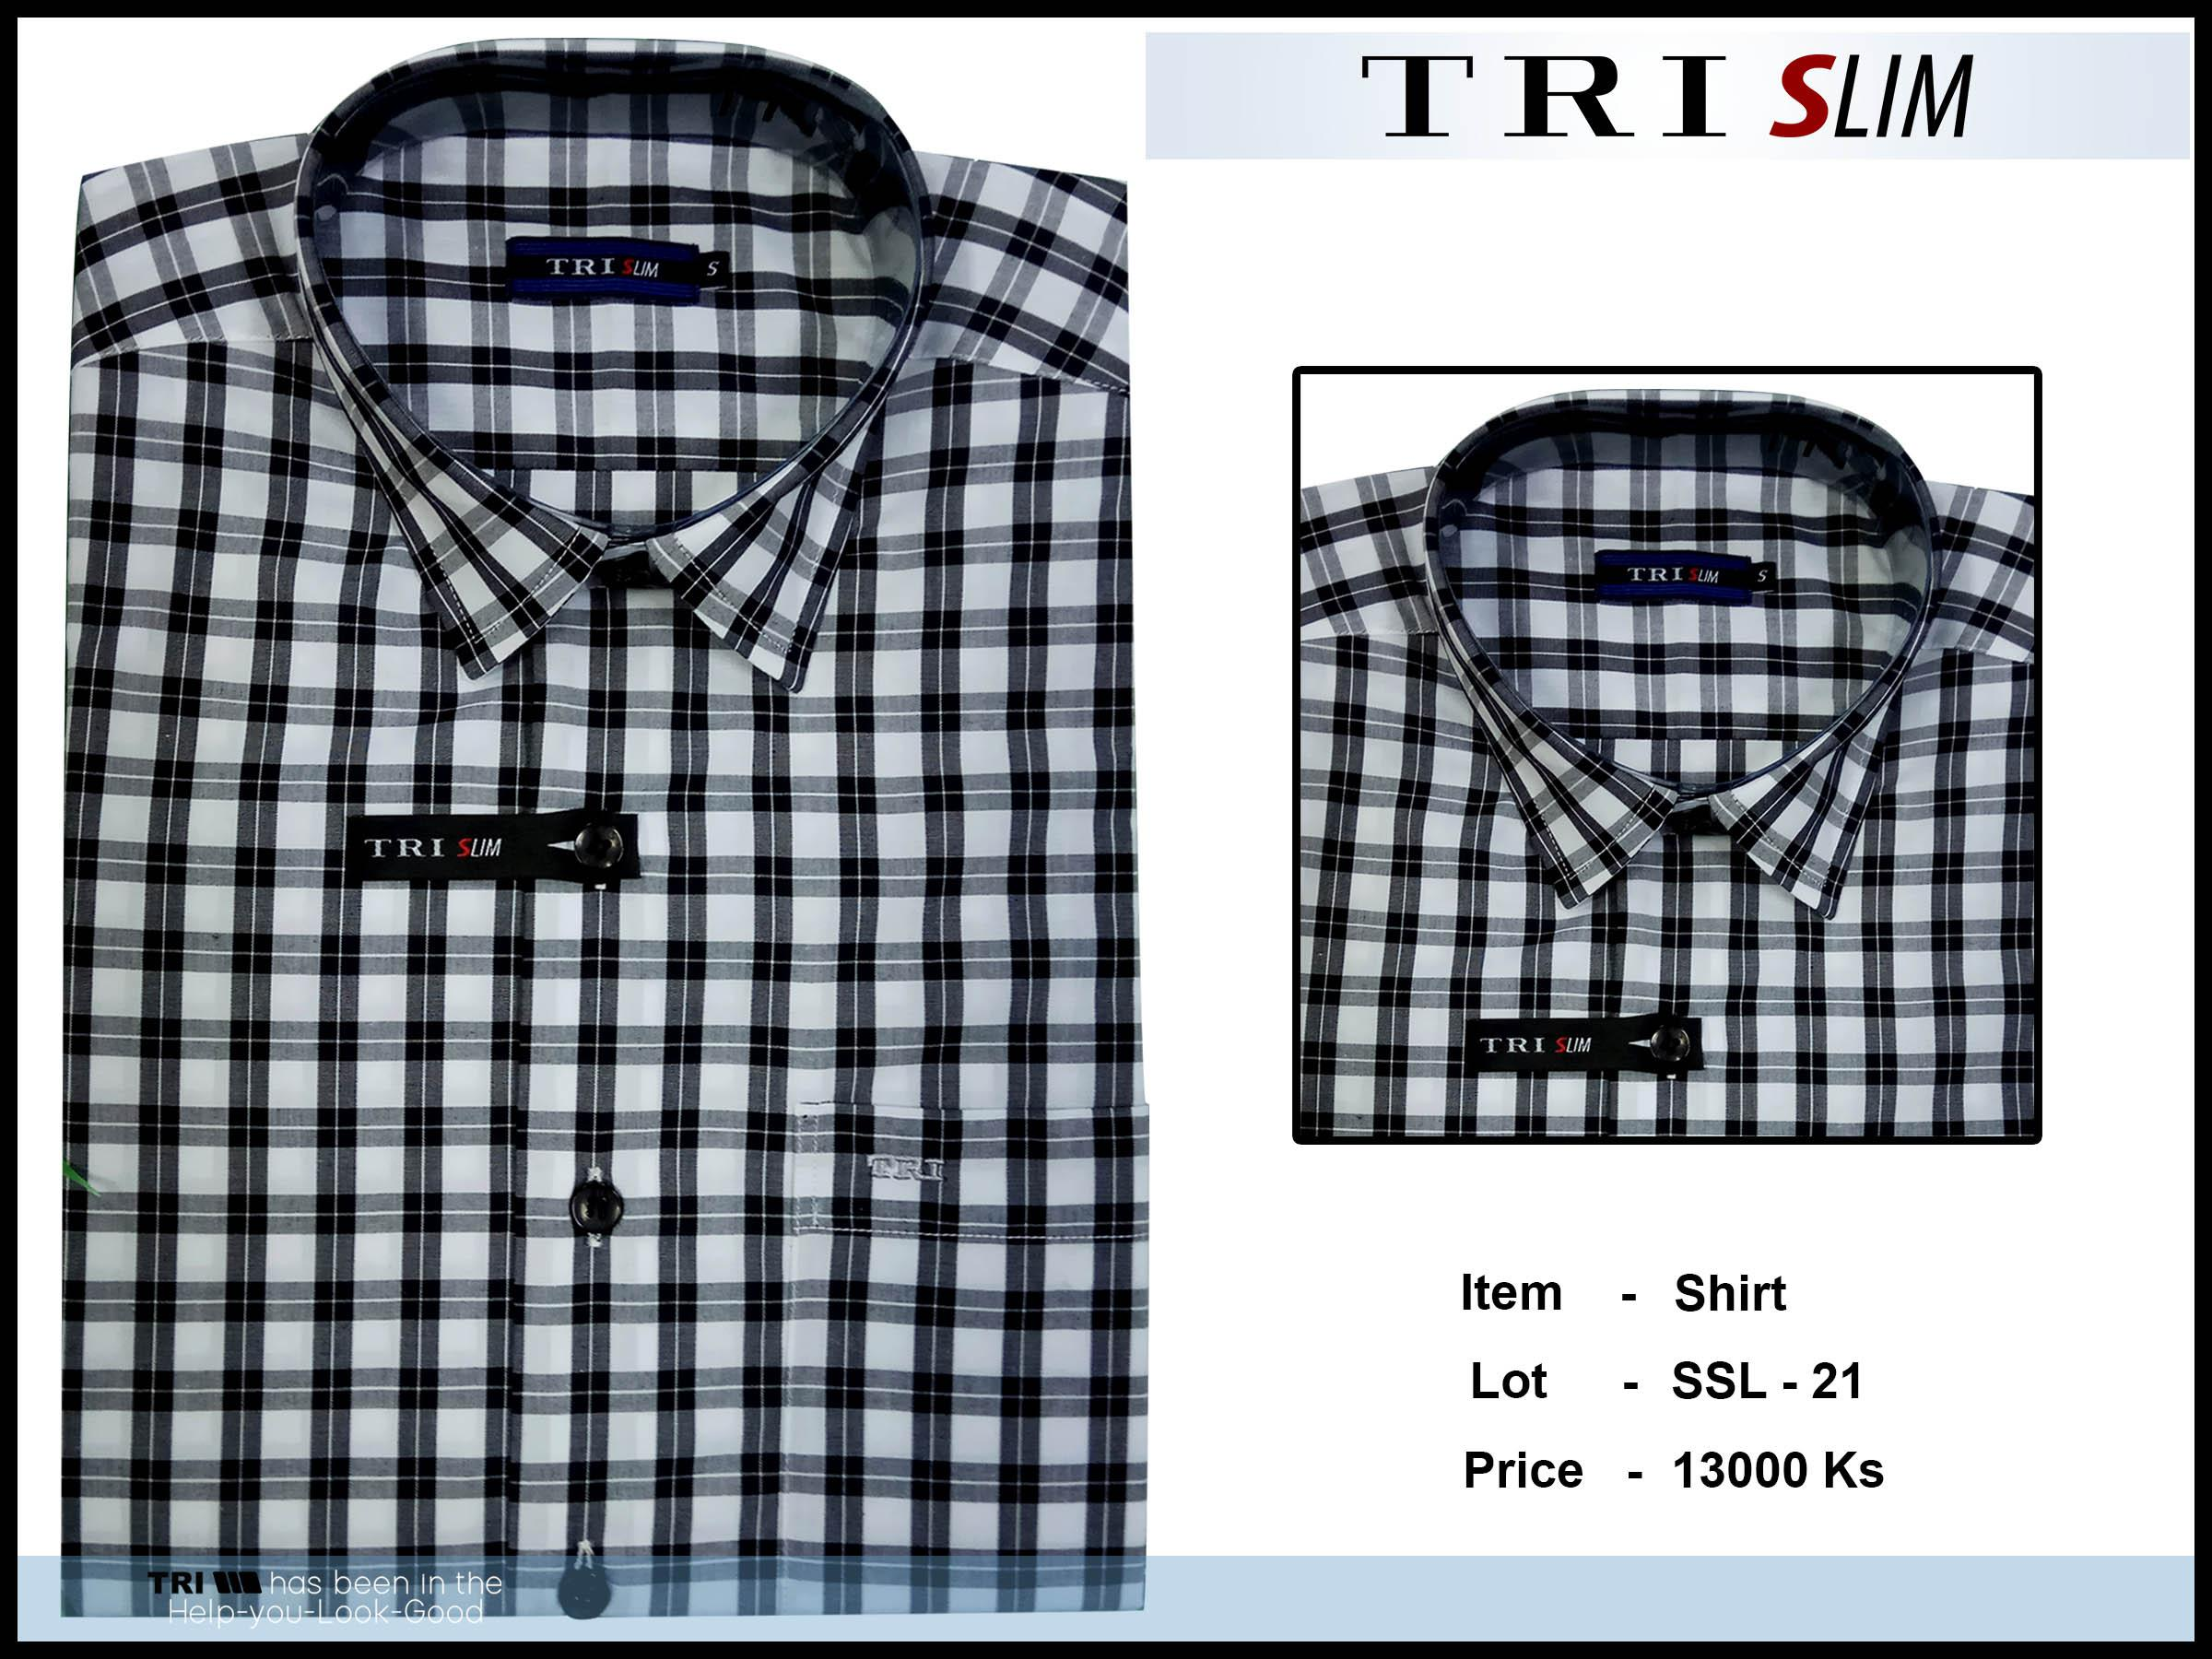 Tri Slim Shirt SSL - 21 - 10